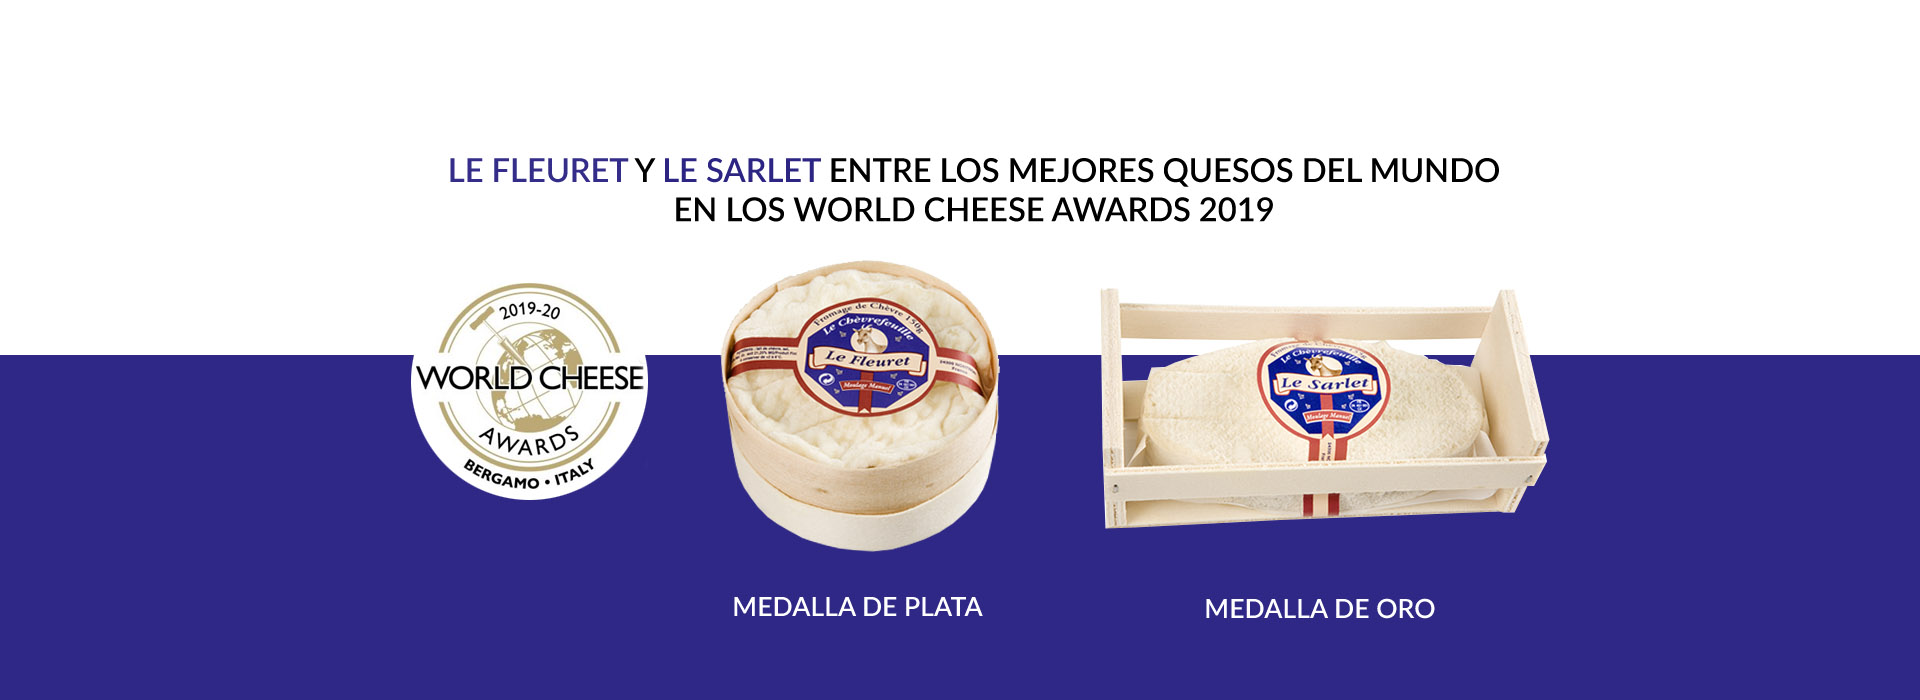 world-cheese-awards-2019